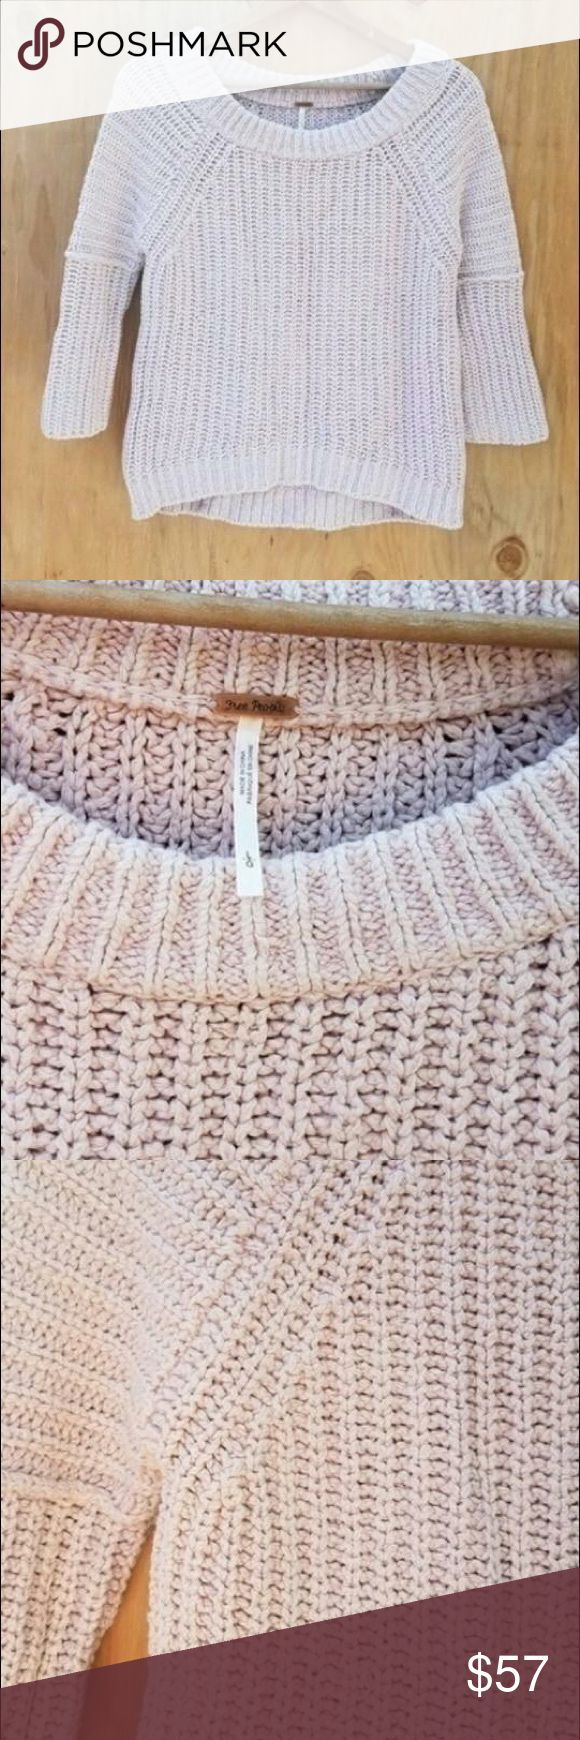 Free people blush pink chunky knit sweater Still new but no tags. Slightly cropped and half sleeved. Perfect for spring. Pair with some booties. Size large Free People Sweaters